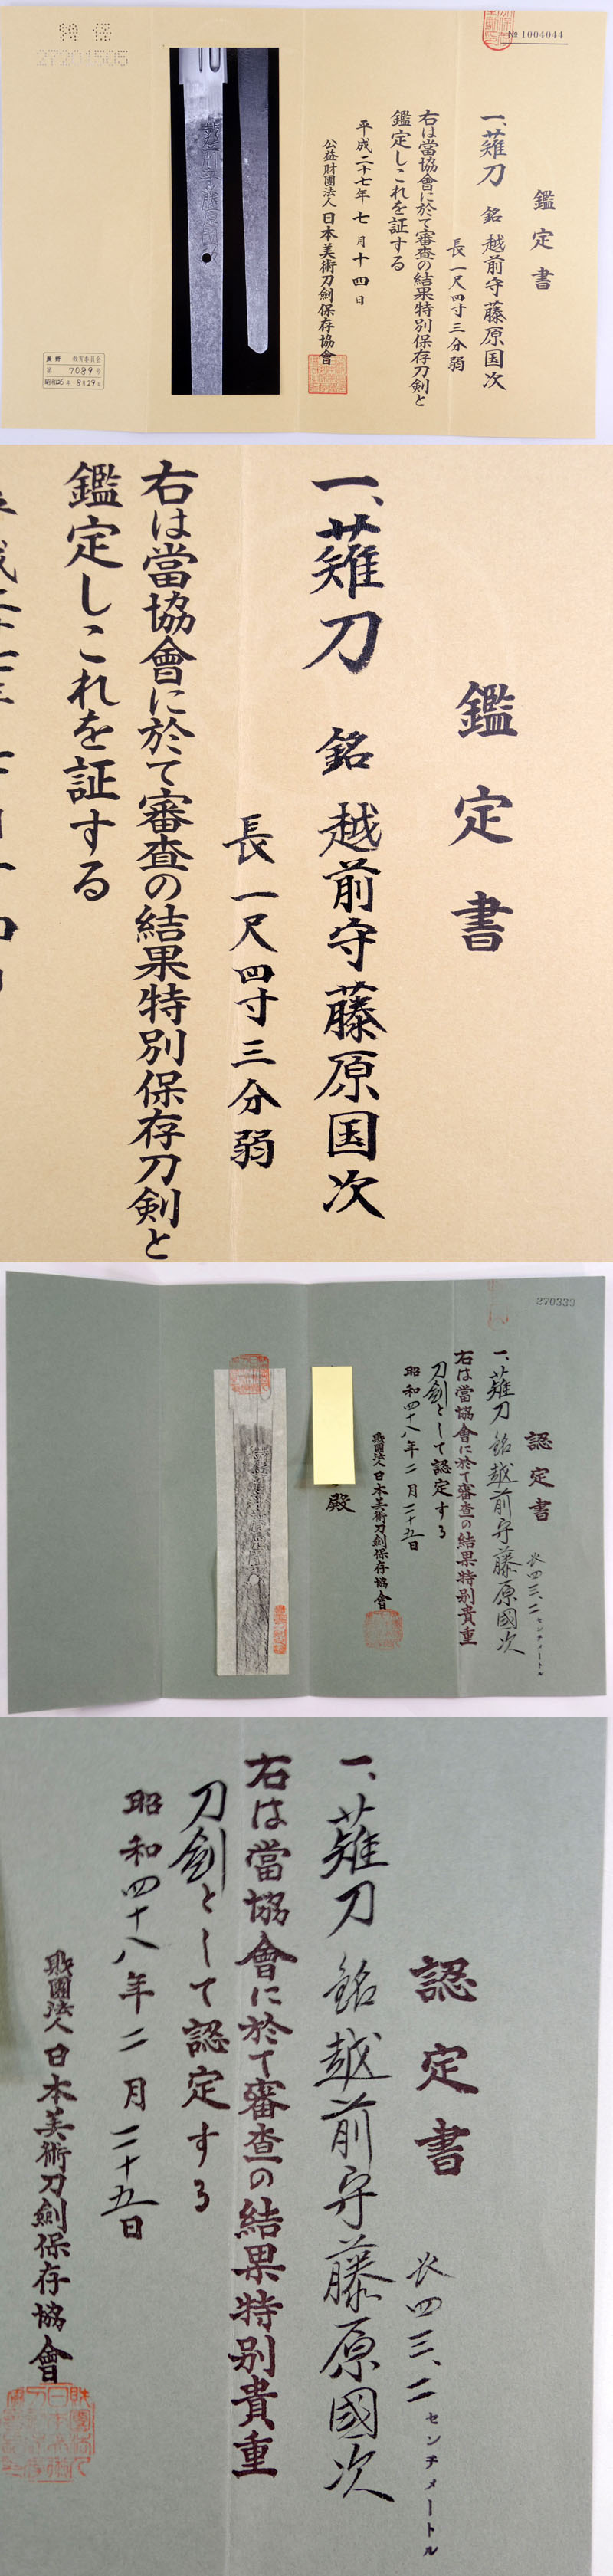 越前守藤原国次 Picture of Certificate